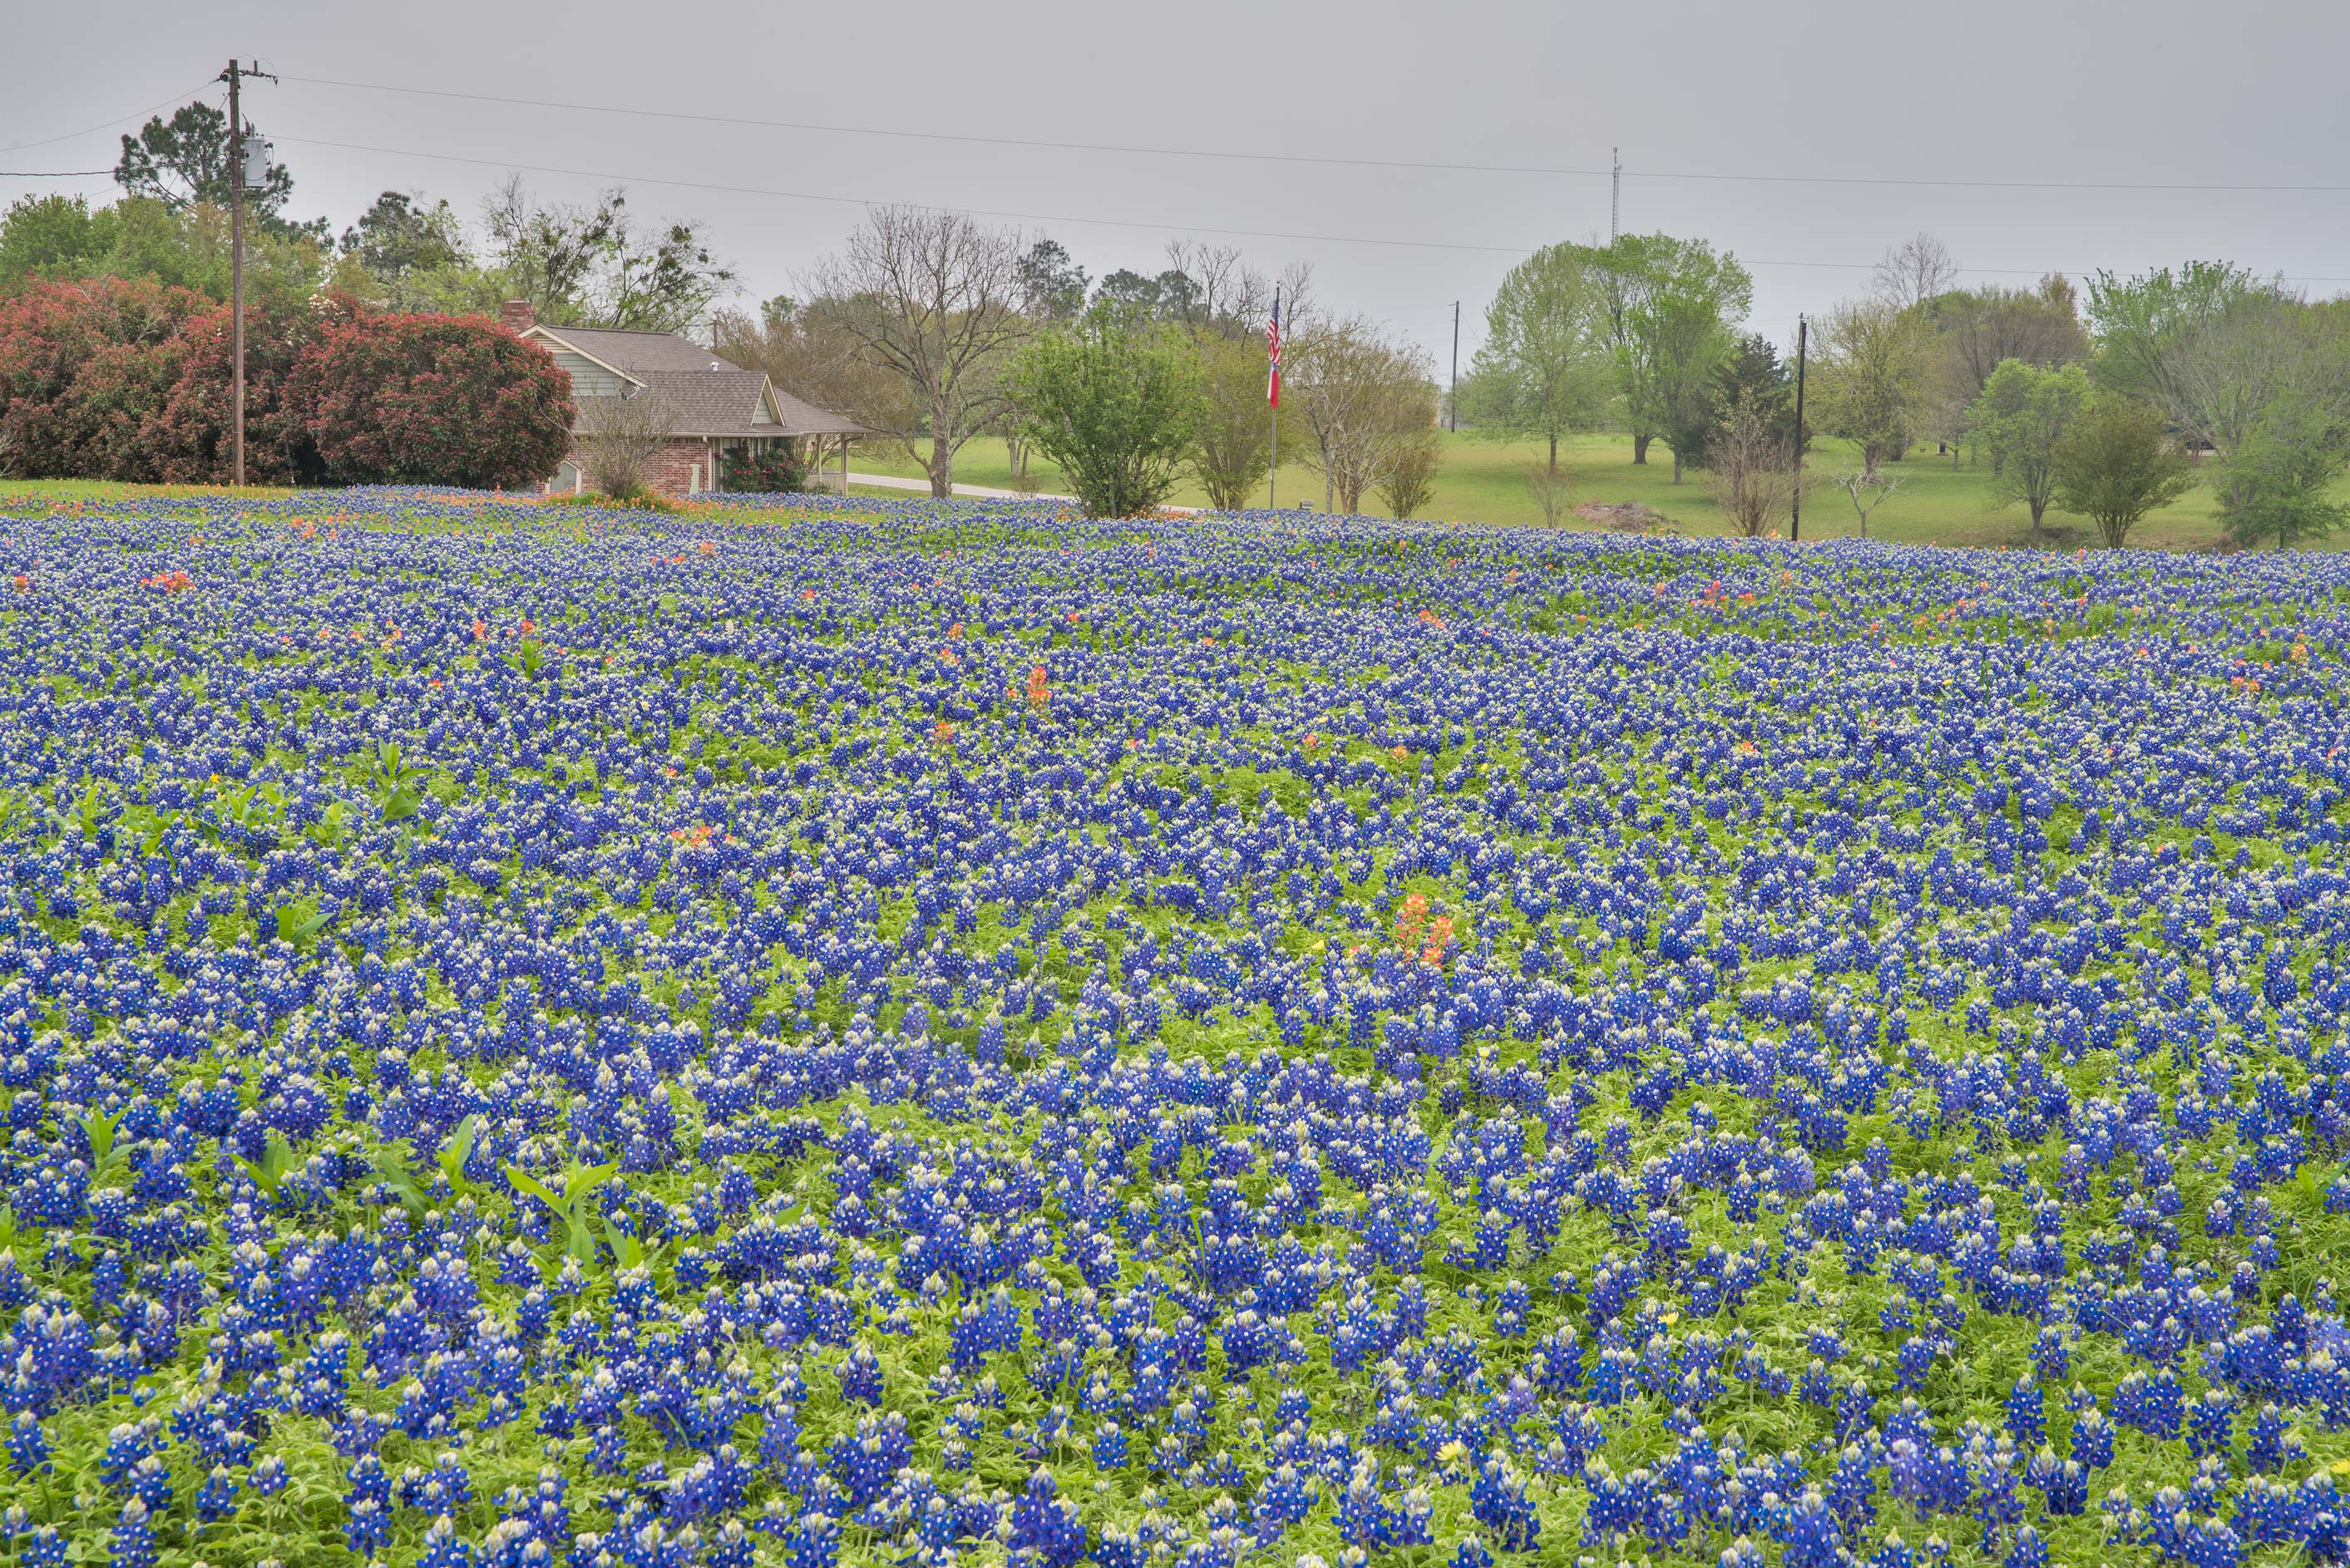 Bluebonnet flowers at 9190 Lake Dr. north from Chappell Hill. Texas